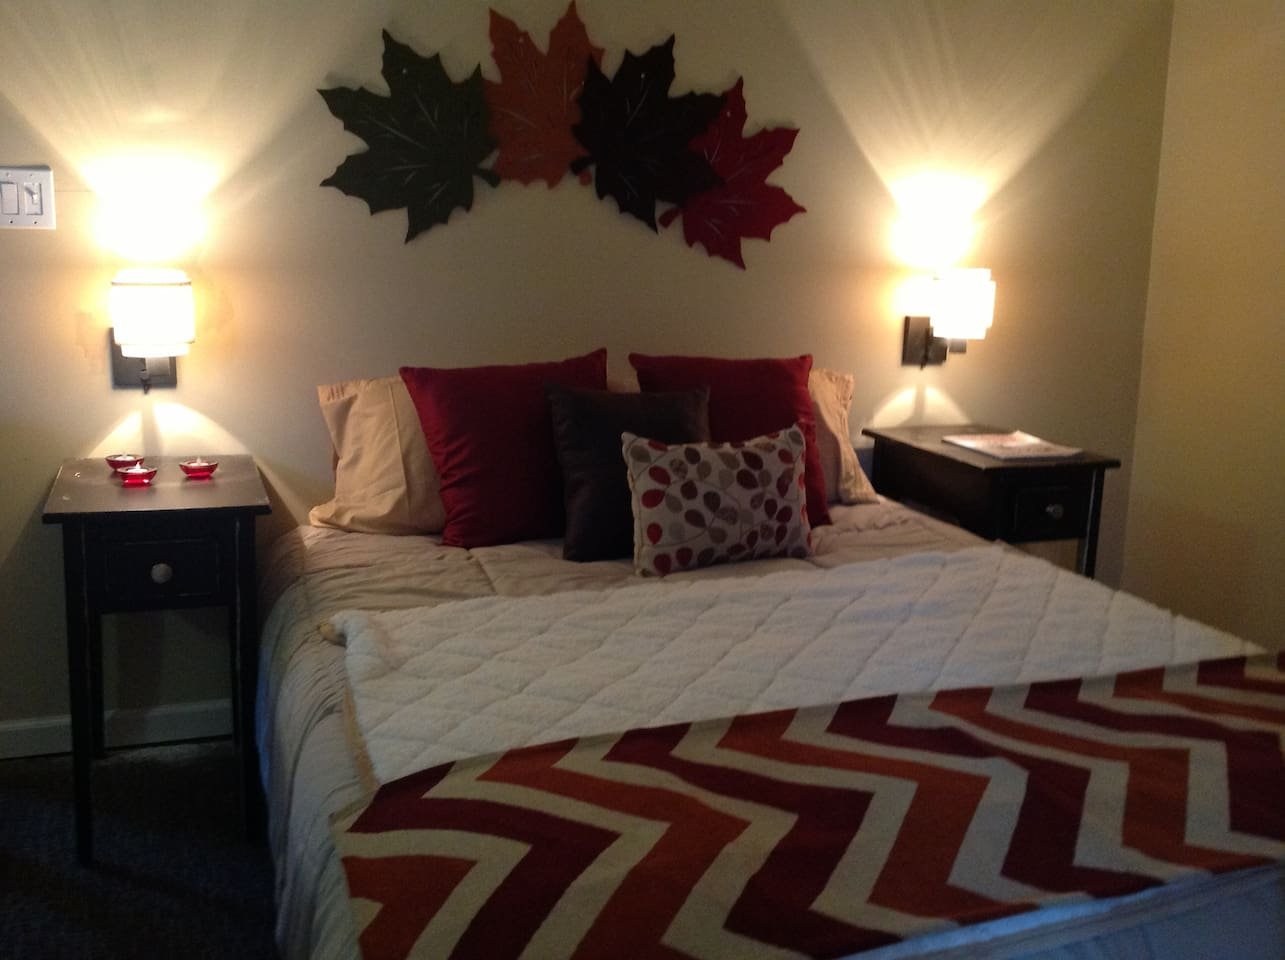 The master bedroom has a firm queen mattress accented by autumn colors.